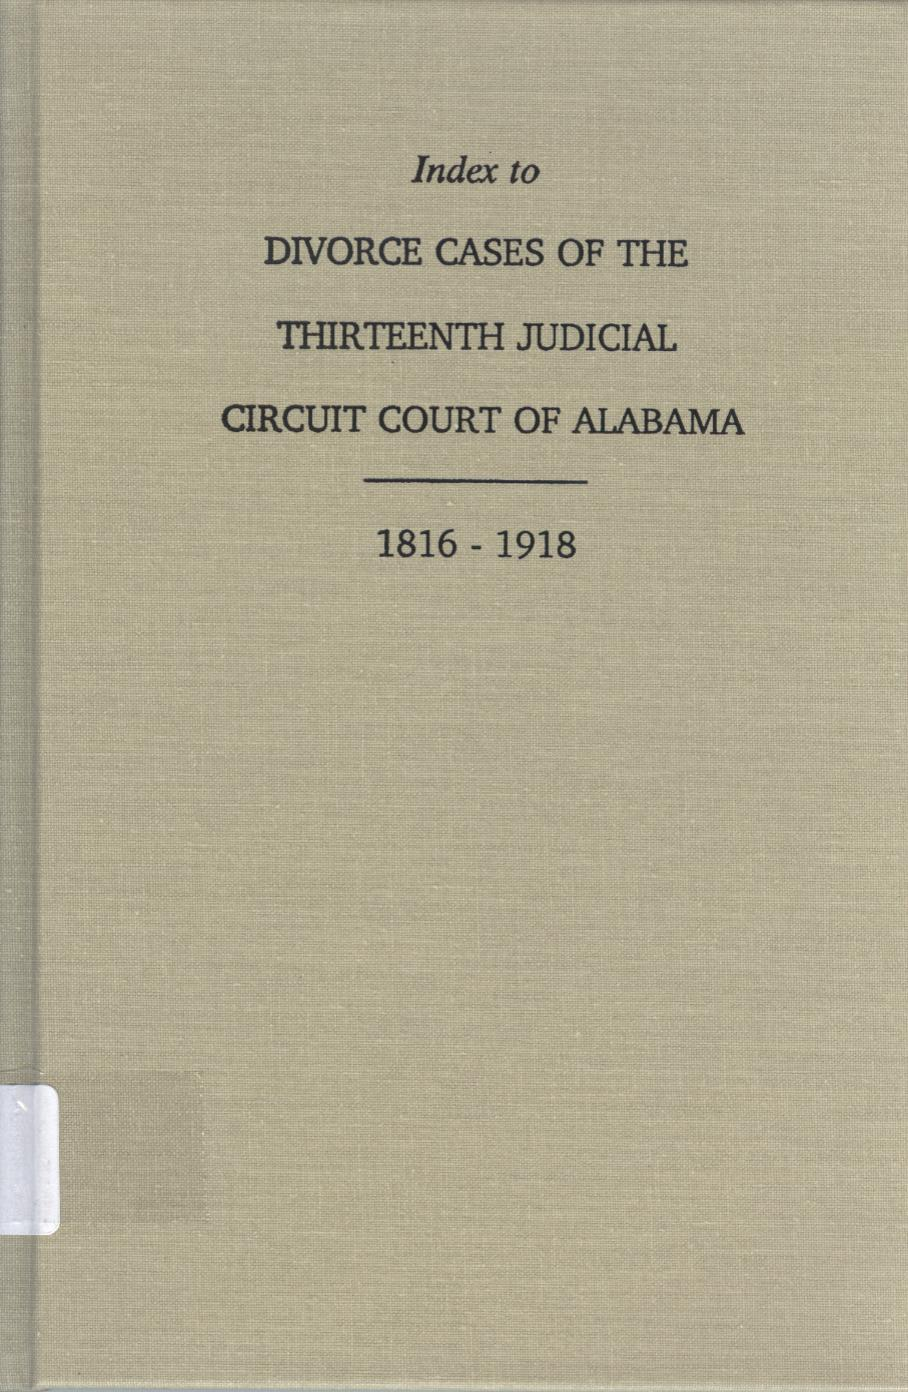 List of Useful Court References